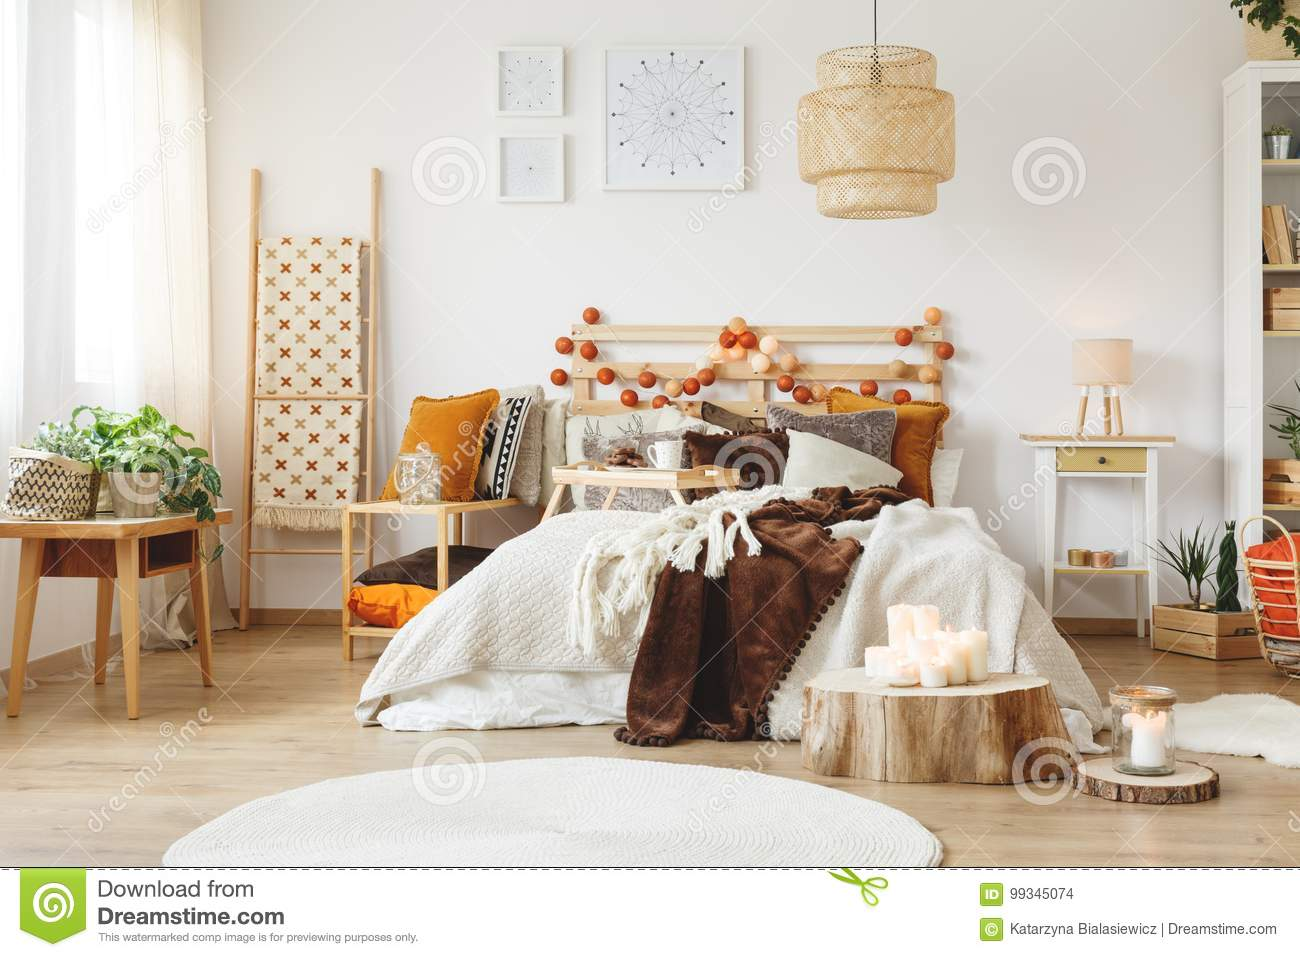 Messy bed in bedroom stock photo. Image of beige, apartment - 99345074